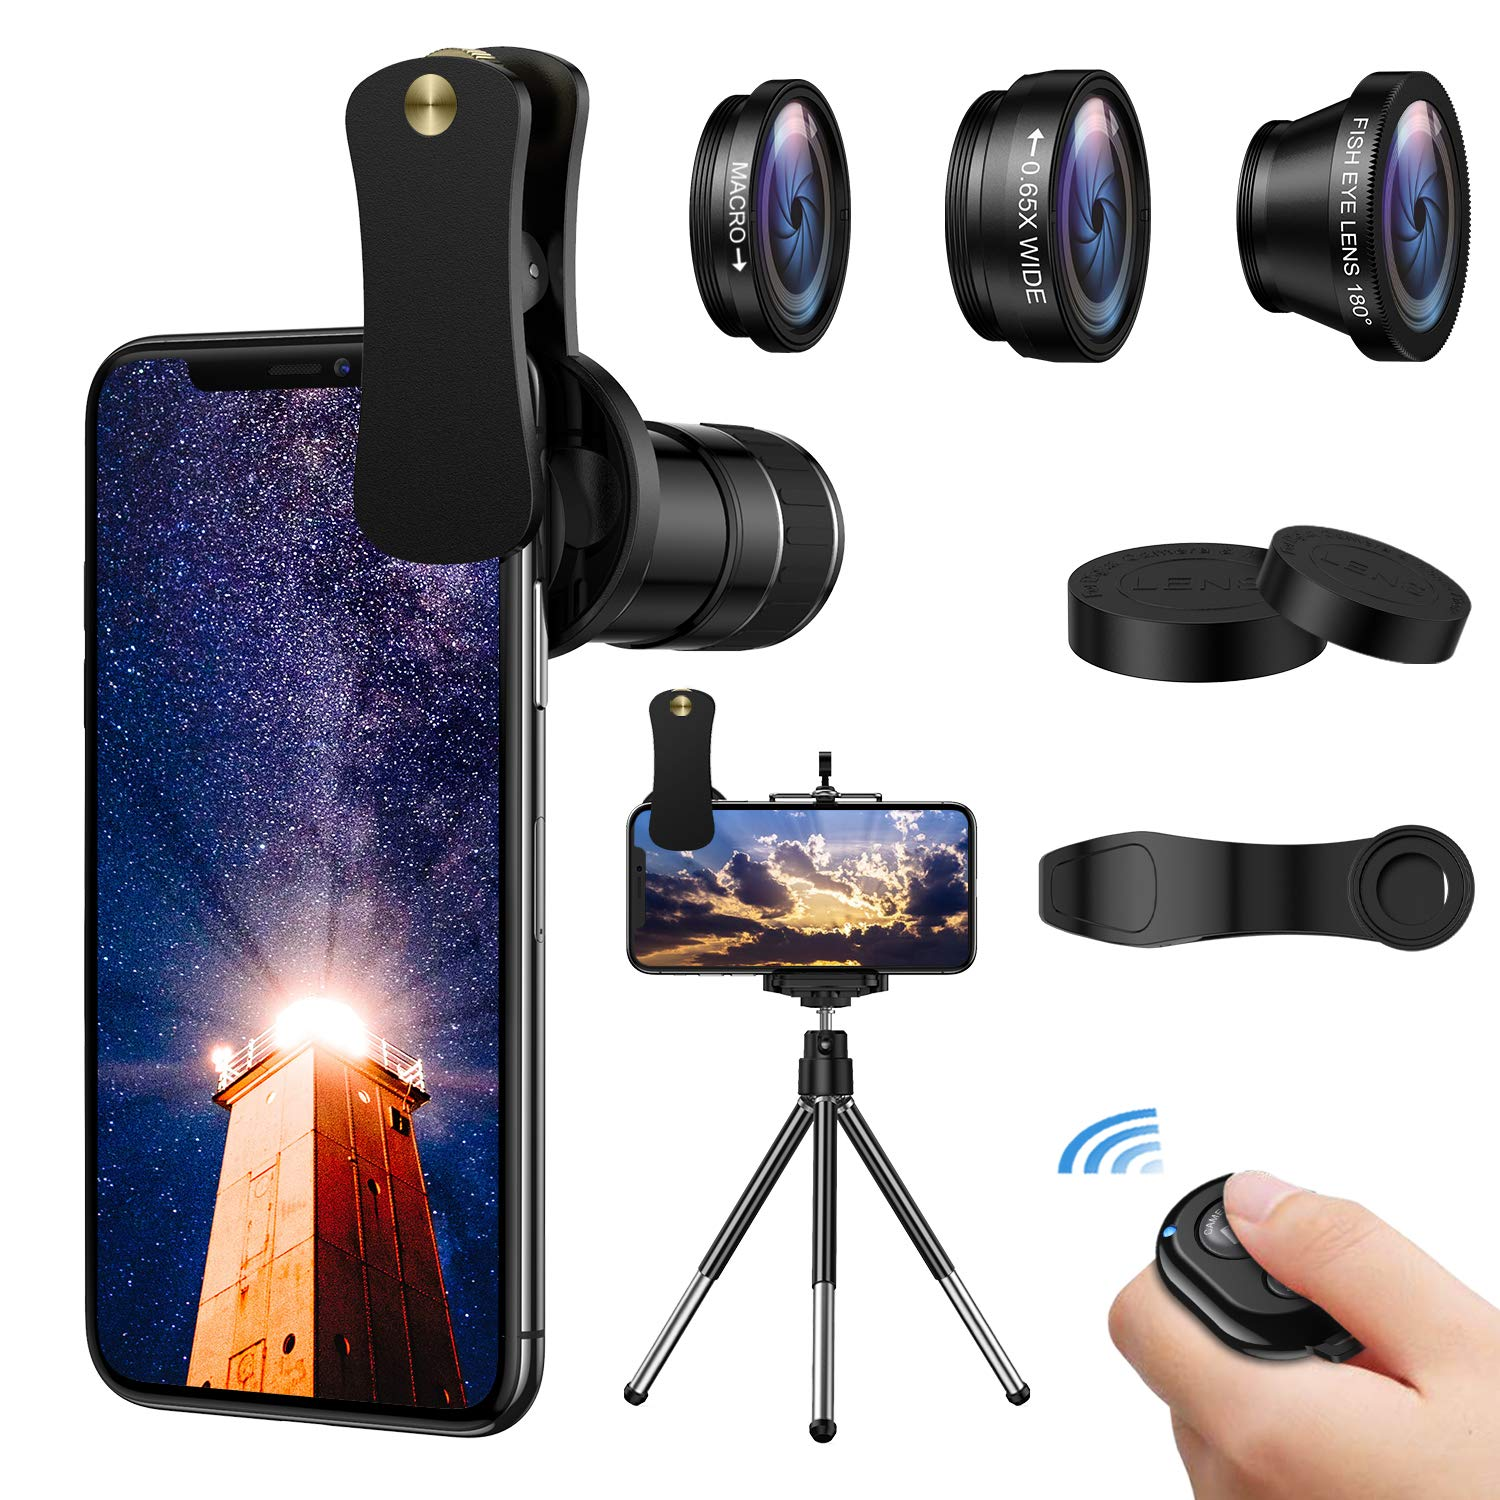 4 in 1 Phone Camera Lens Kit,12X Telephoto Lens + 180° Fisheye + 0.65 Wide Angle+ Macro Lens,ARORY Smartphone Lens with Tripod+Shutter Remote for iPhone 8 7 6 Plus, Samsung by ARORY